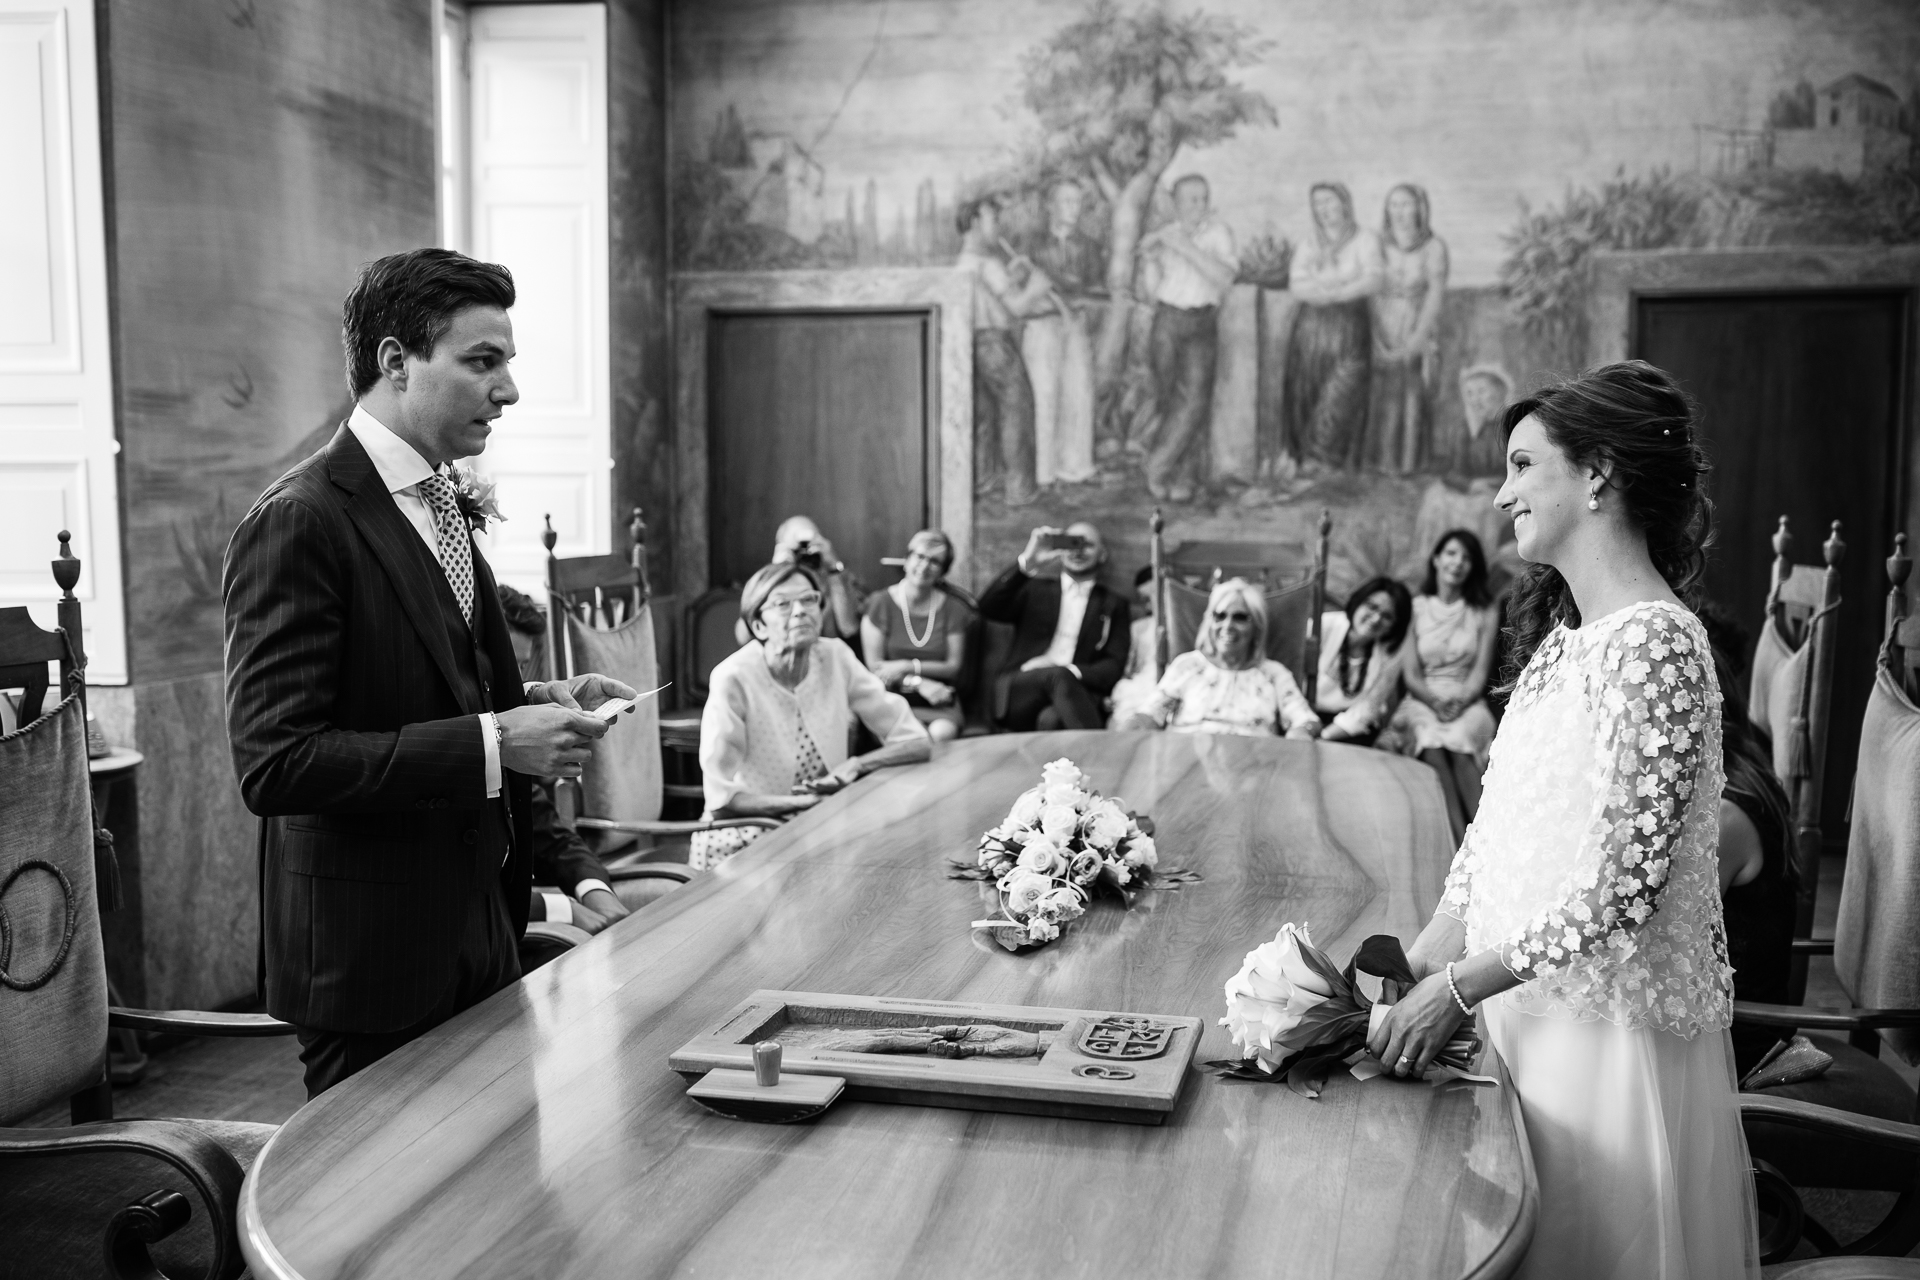 Lugano Town Hall, Switzerland Elopement Wedding Ceremony Photo | The bride and groom both stand while the groom reads his vows to the bride across the table. She can't help but smile, nor can the guests sitting around the table